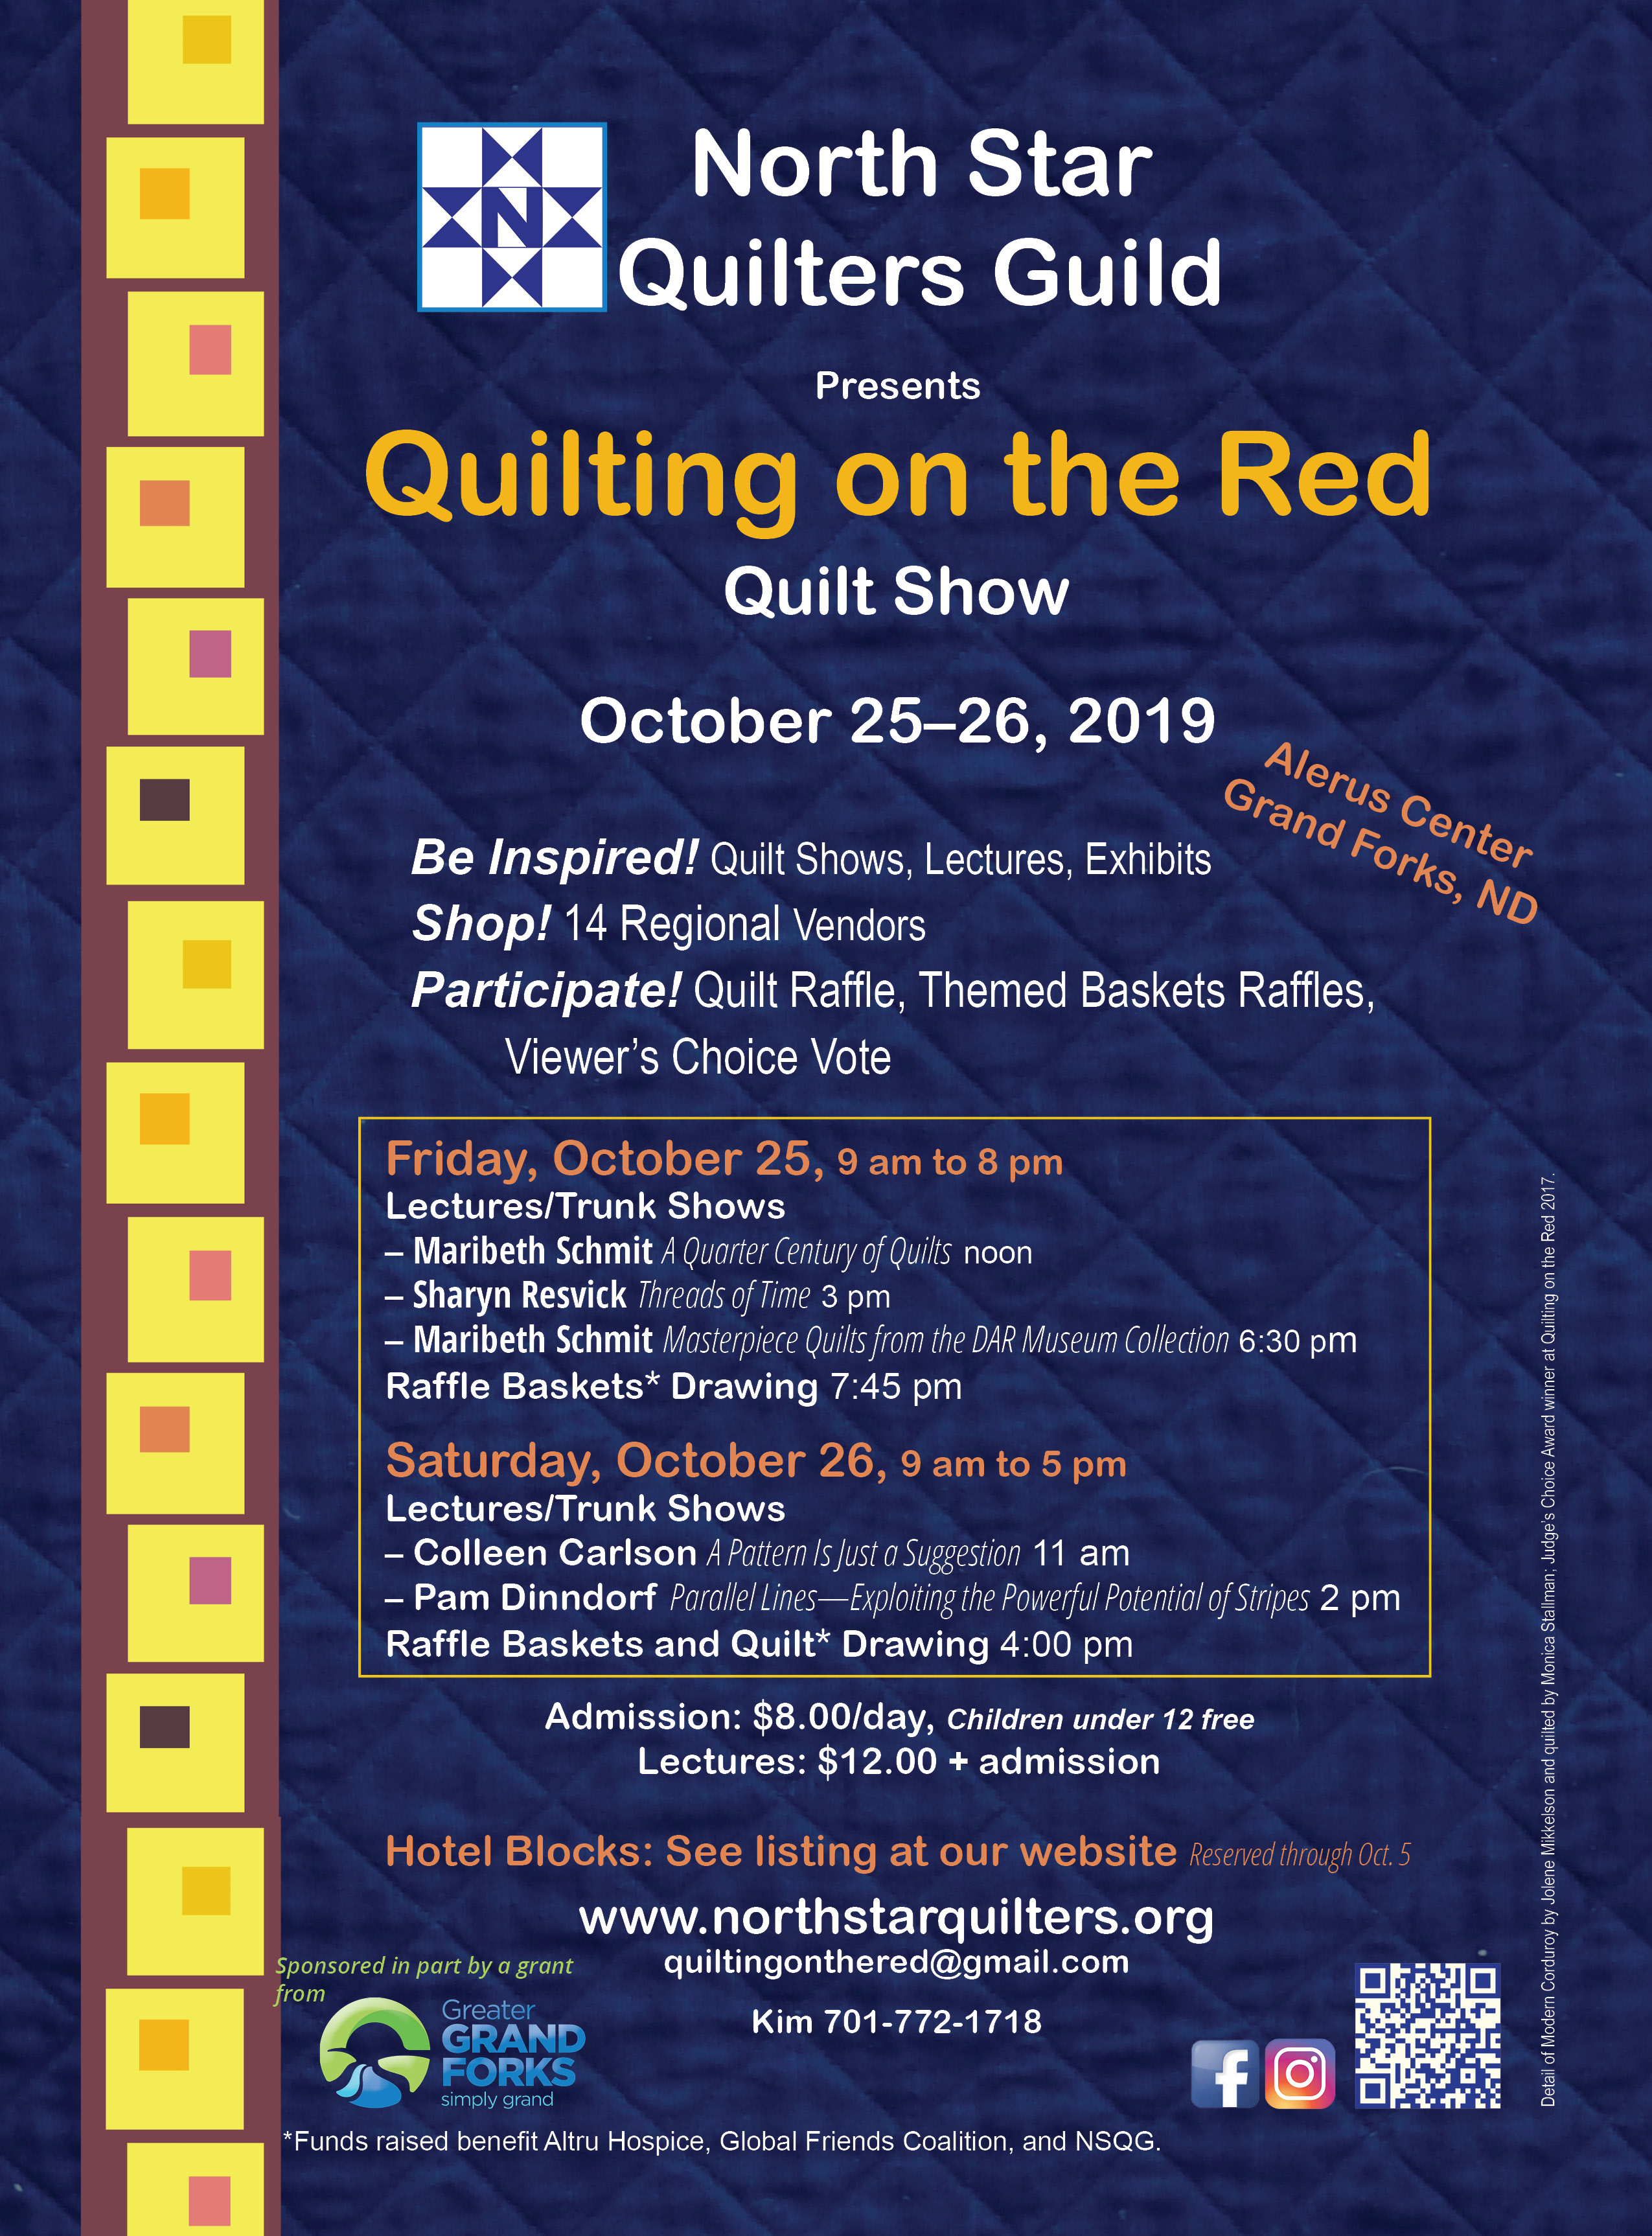 Quilting on the Red 2019 is October 24, 25, 26